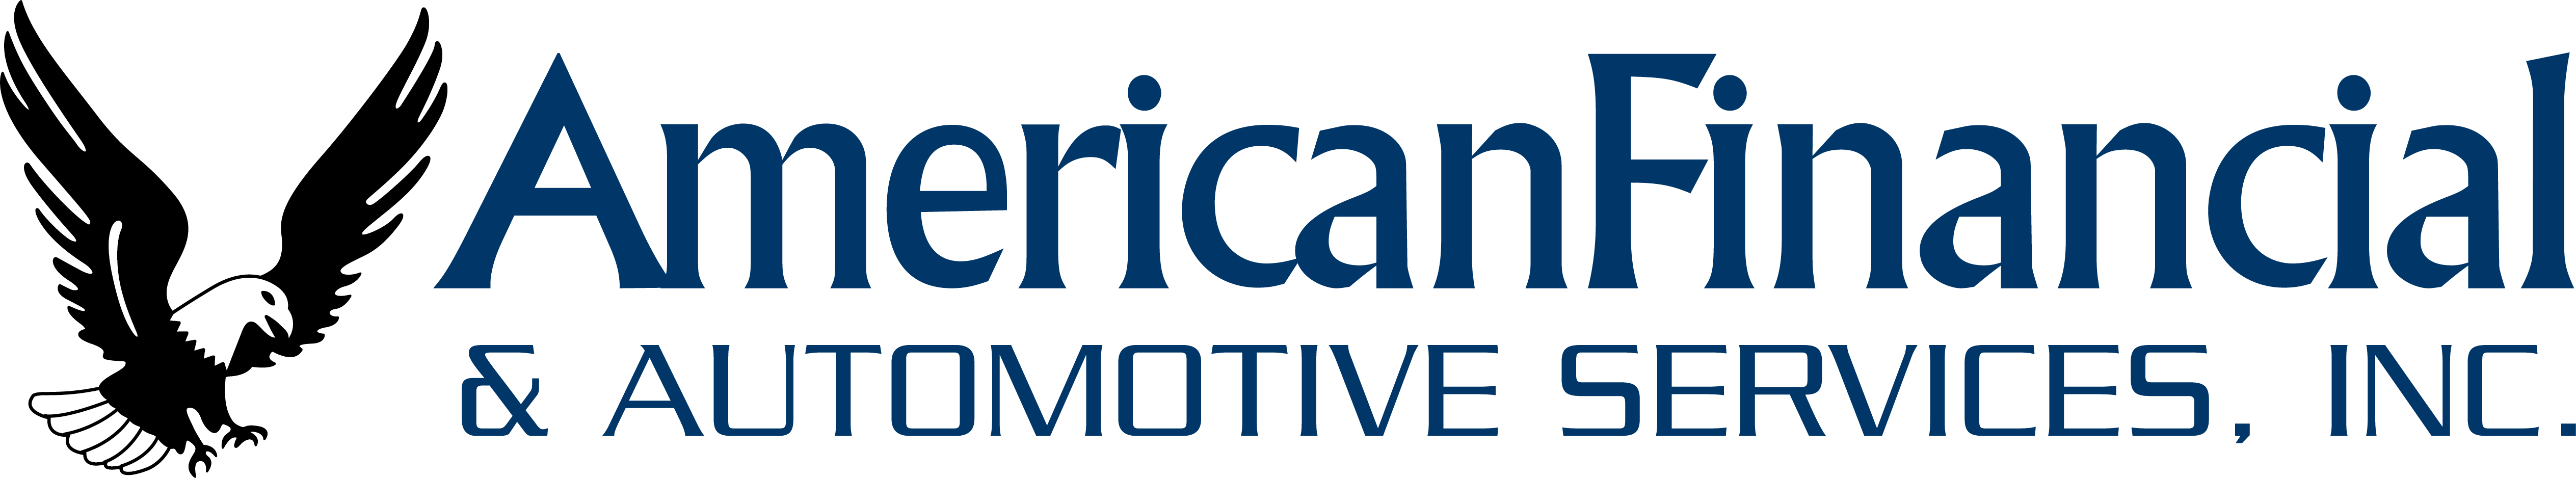 American Financial & Automotive Services Logo